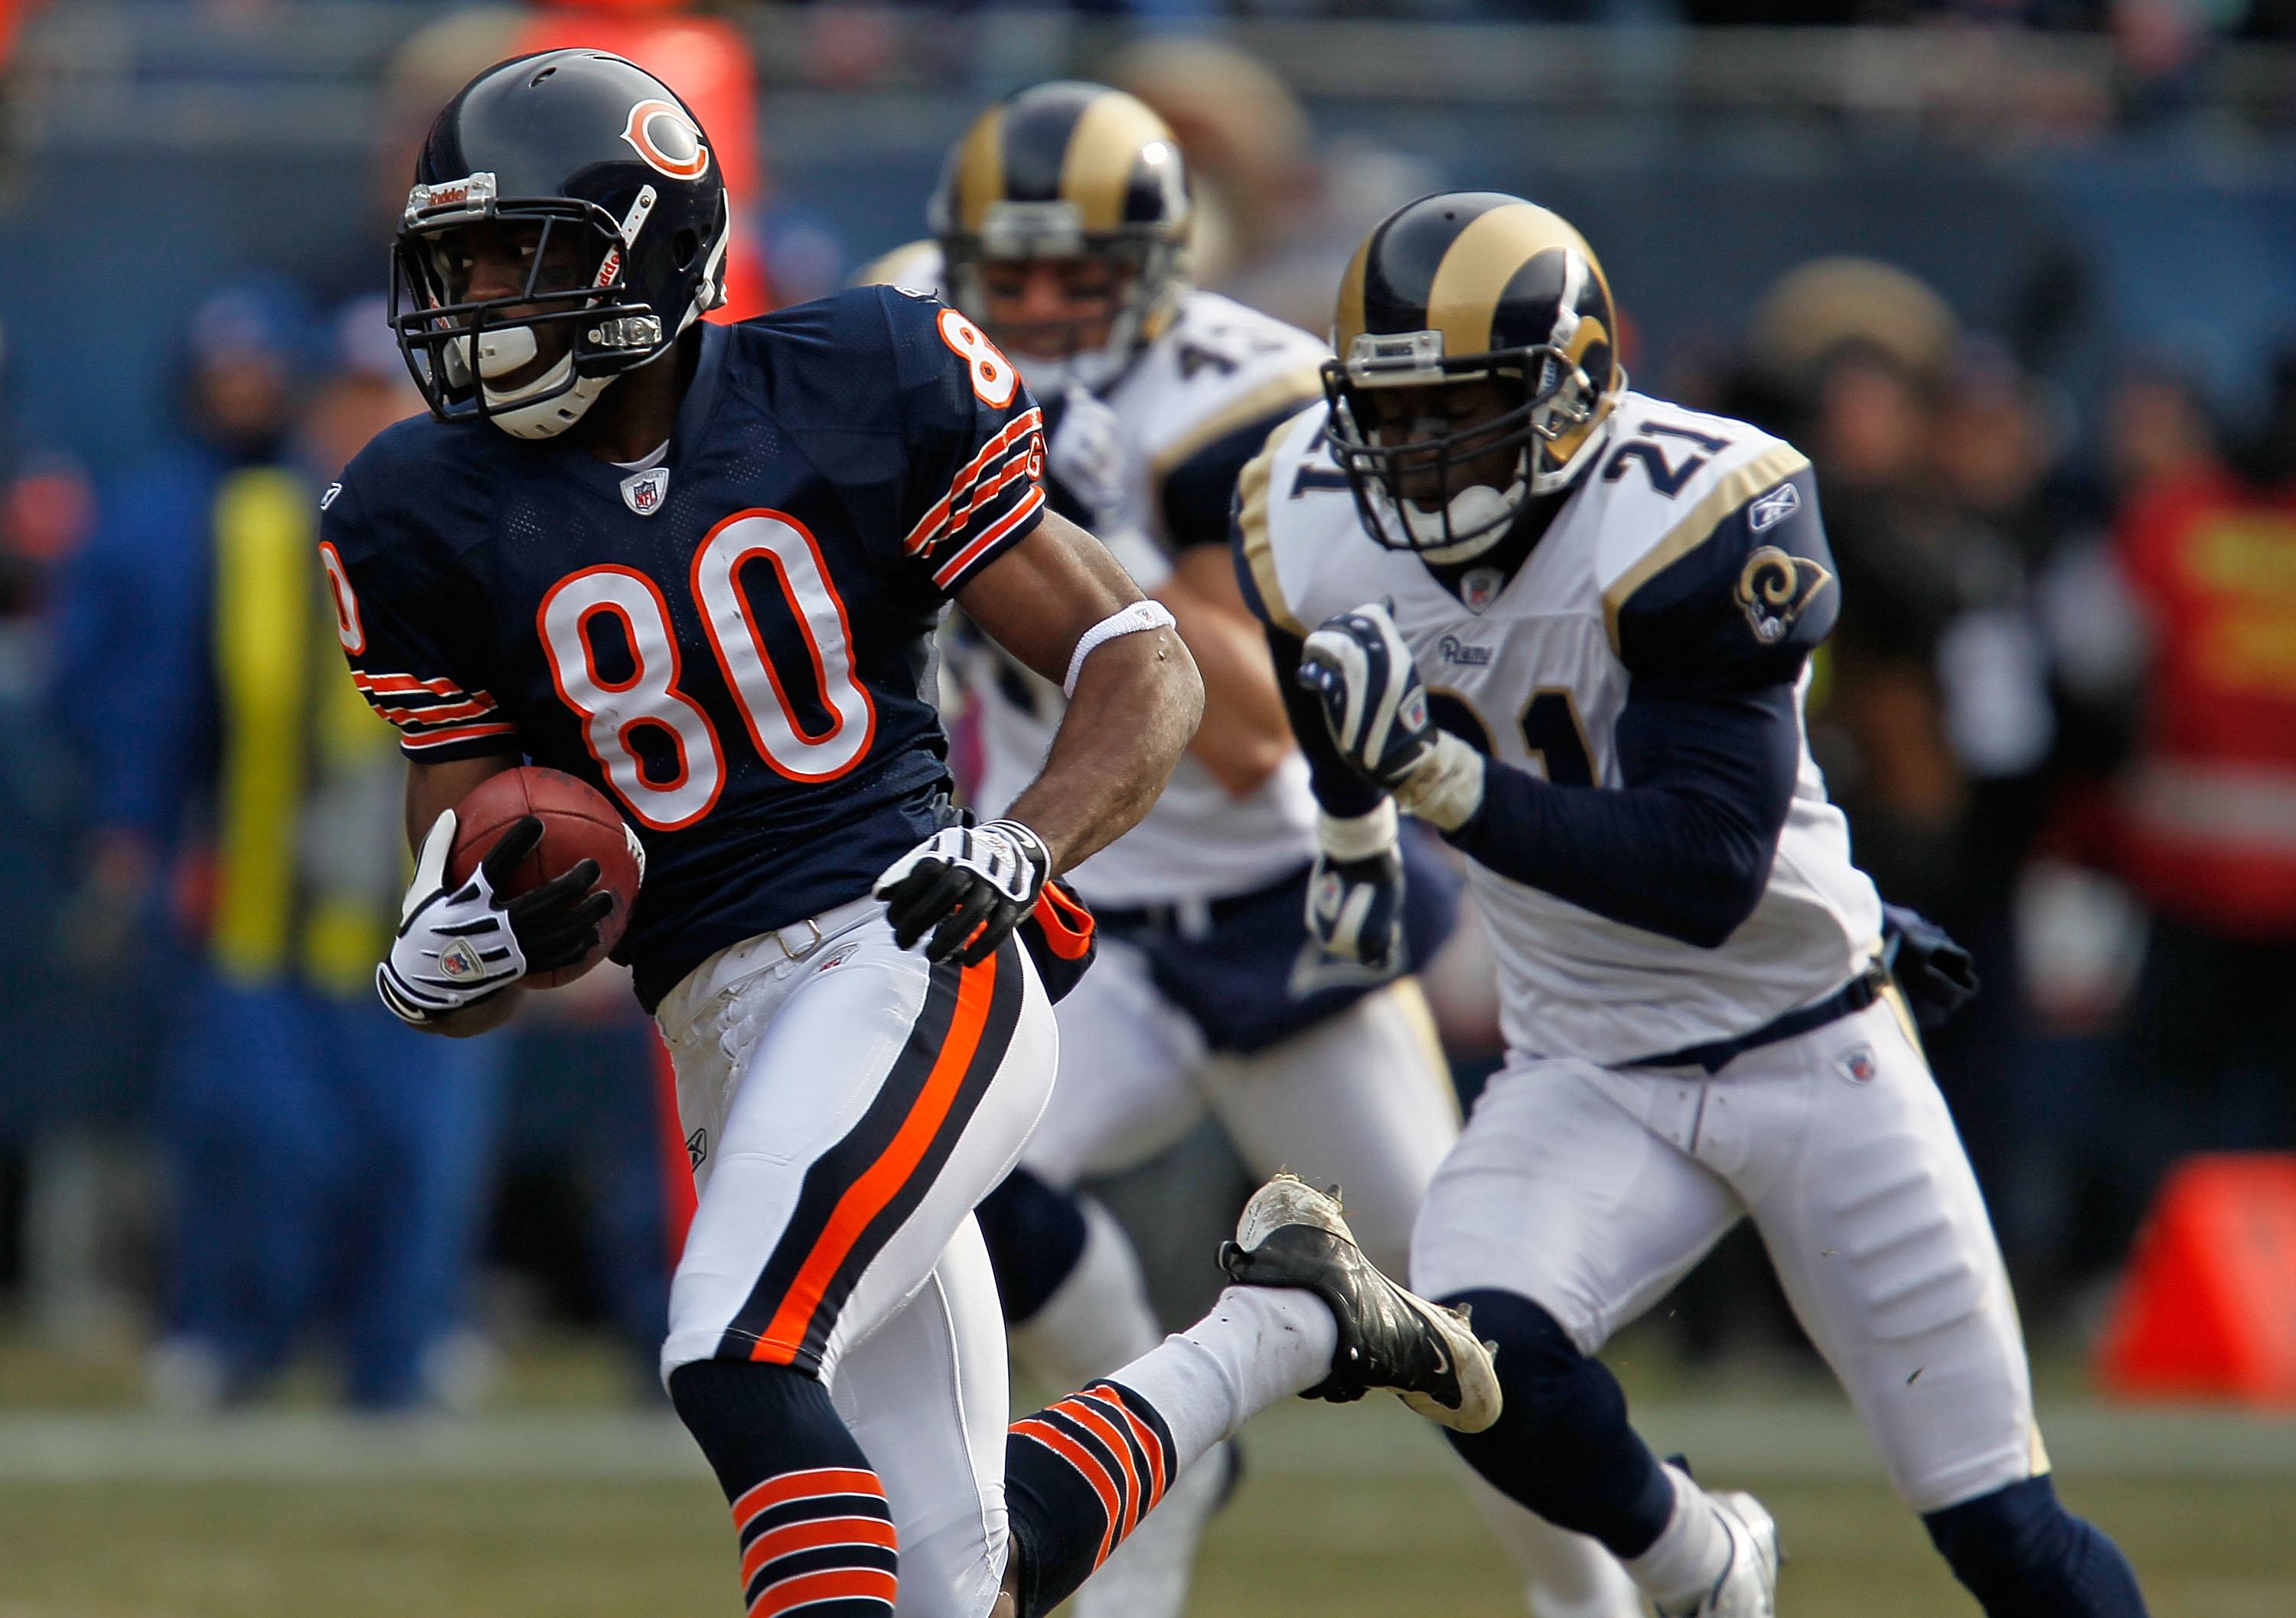 CHICAGO - DECEMBER 06:  Earl Bennett #80 of the Chicago Bears breaks for a long run and is chased by (L-R) Craig Dahl #43 and Oshiomogho Atogwe of the St. Louis Rams at Soldier Field on December 6, 2009 in Chicago, Illinois. The Bears defeated the Rams 17